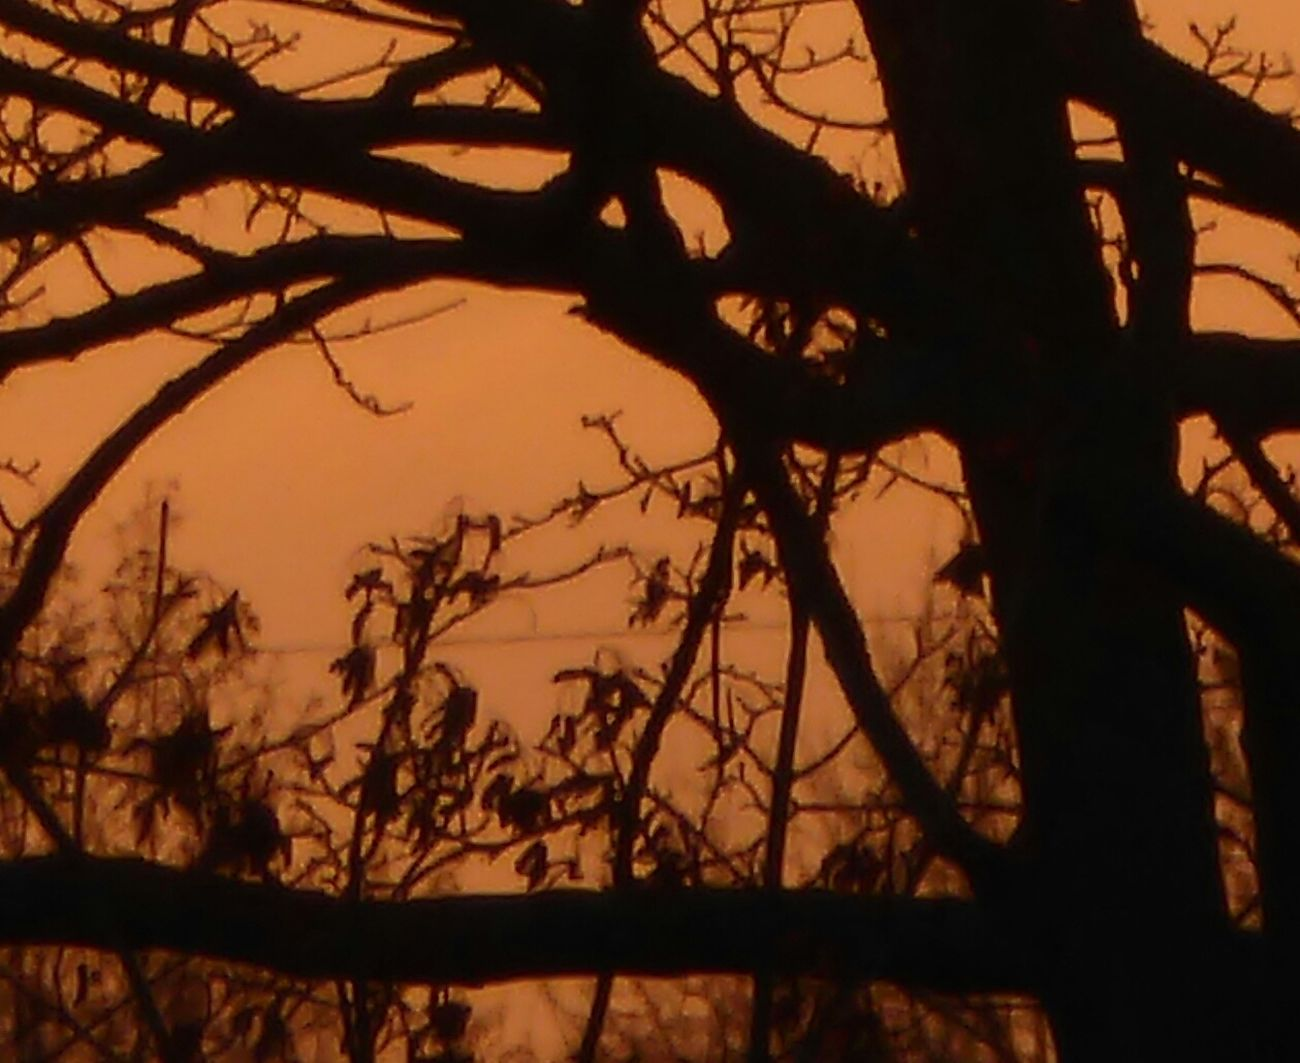 Sundown Through A Tree Silhouette Beauty In Nature Orange Color A Sight That Warms My Heart At Frosty Temperatures Beauty In Nature Love That View Tranquility Tranquil Scene Cold Temperature For My Friends 😍😘🎁 Silhouette Silhouette Photography View From My Window😍